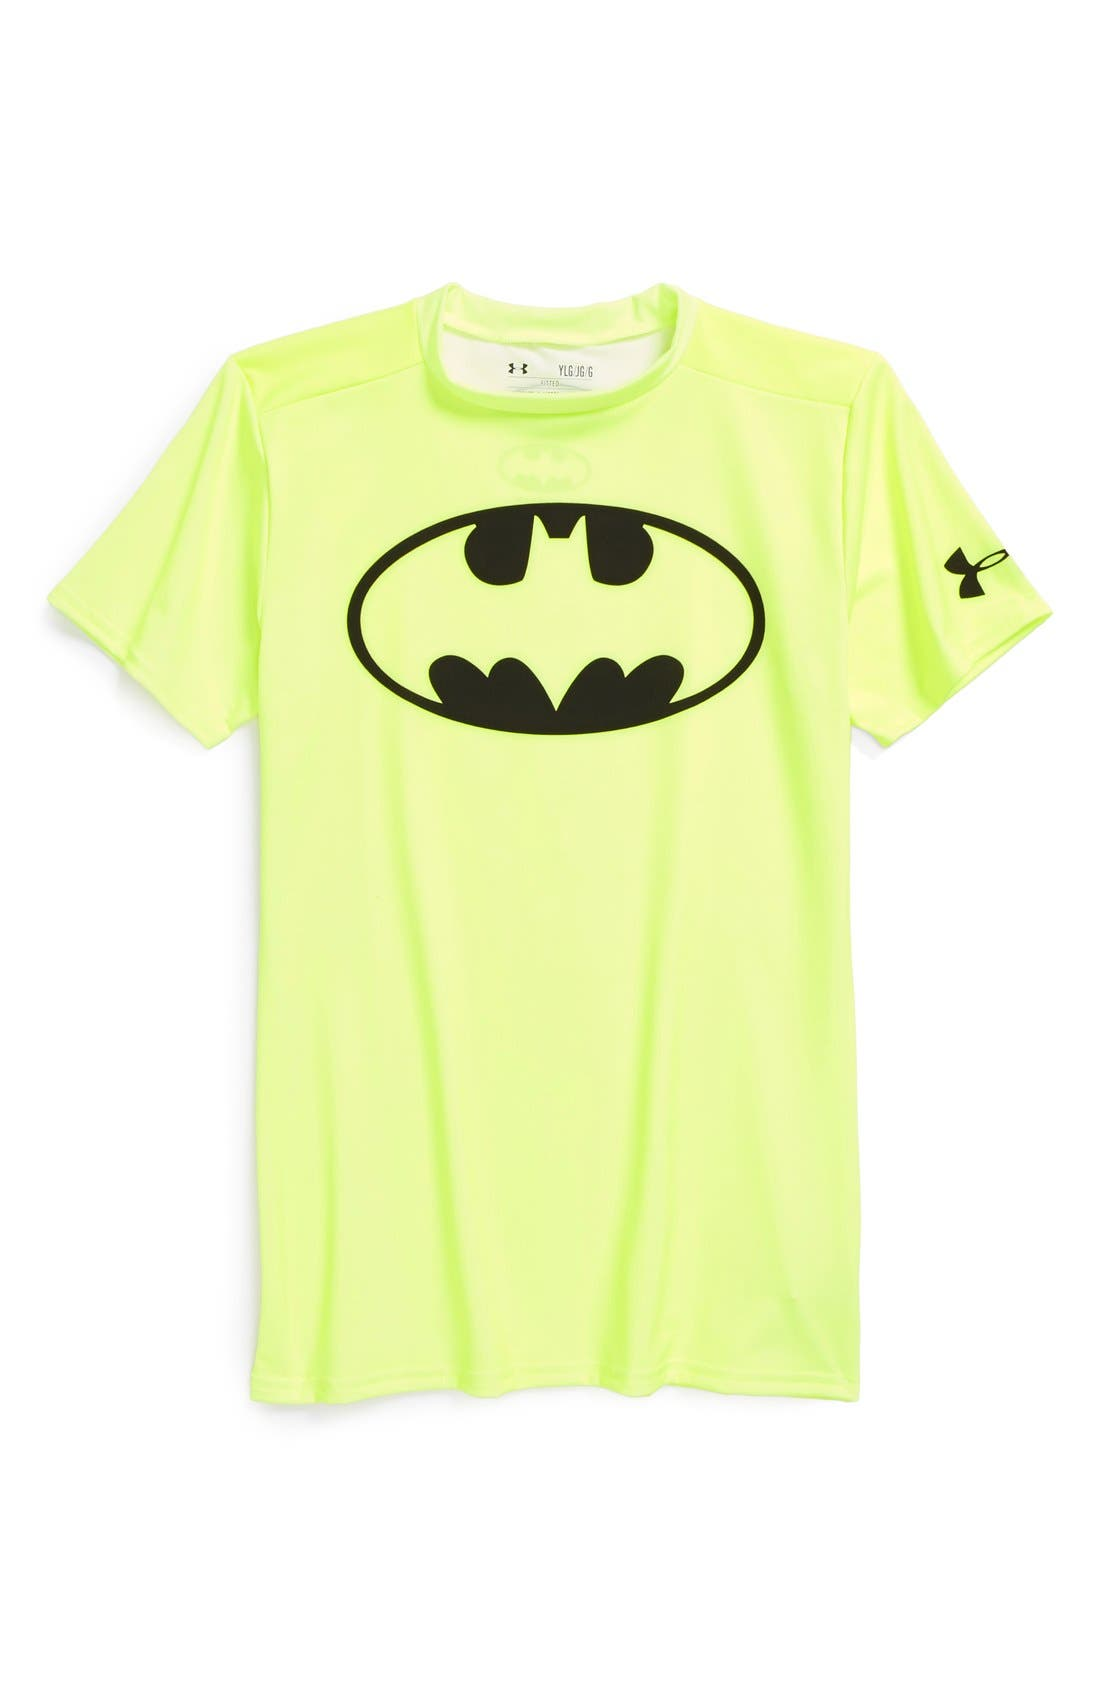 Alternate Image 1 Selected - Under Armour 'Alter Ego' Base Layer T-shirt (Big Boys)